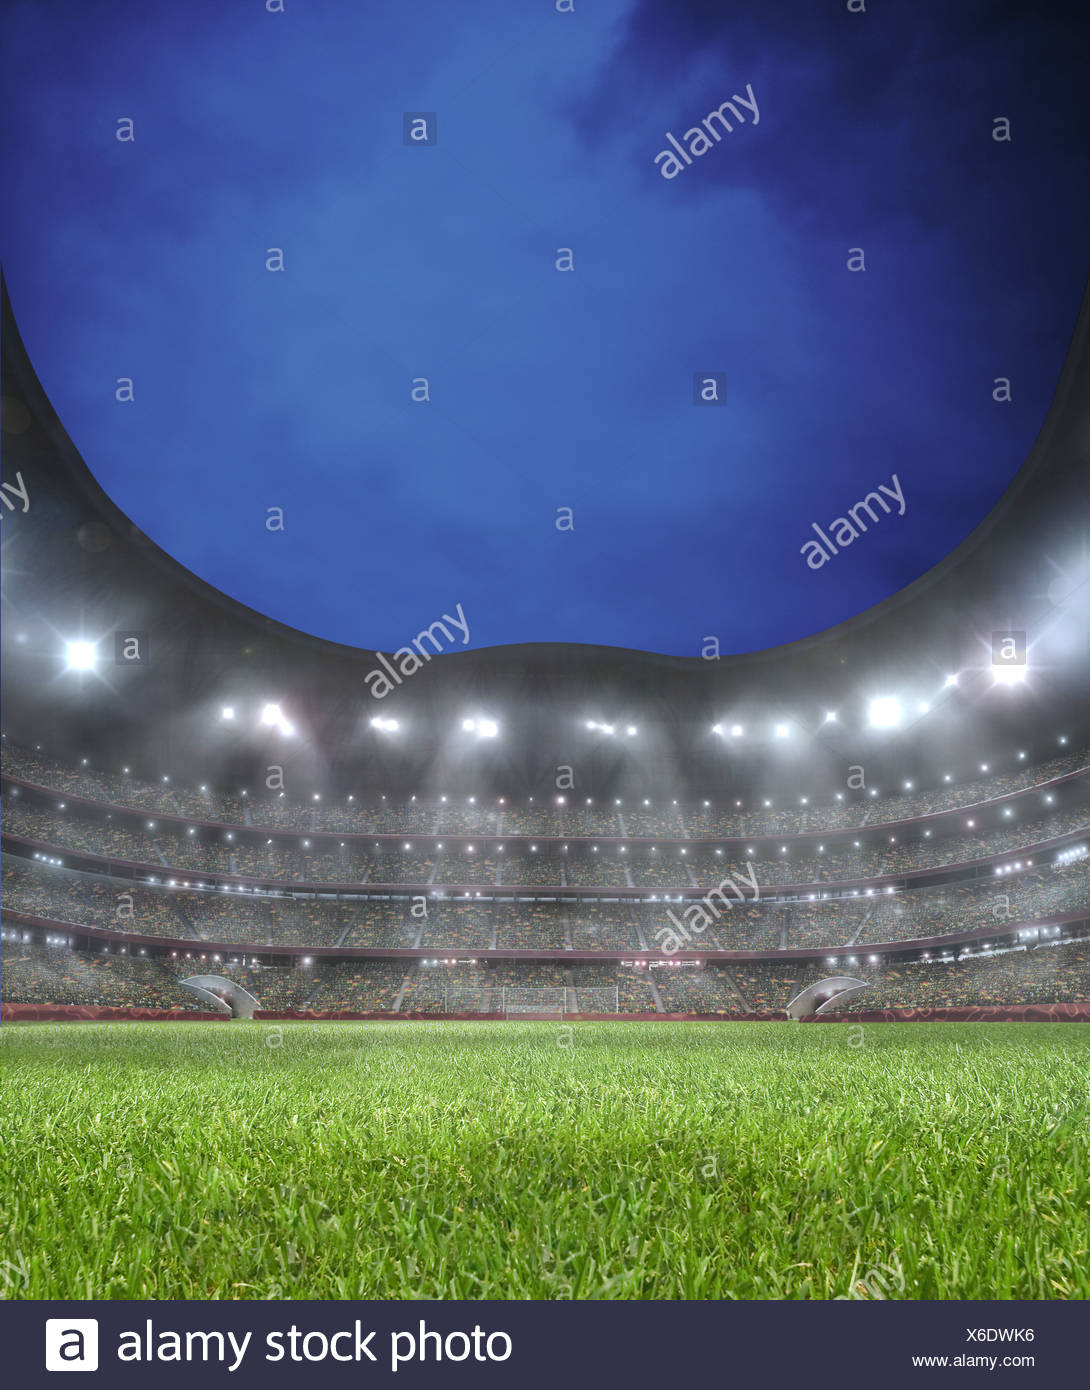 Lighted soccer stadium, lawn, grand stand - Stock Image